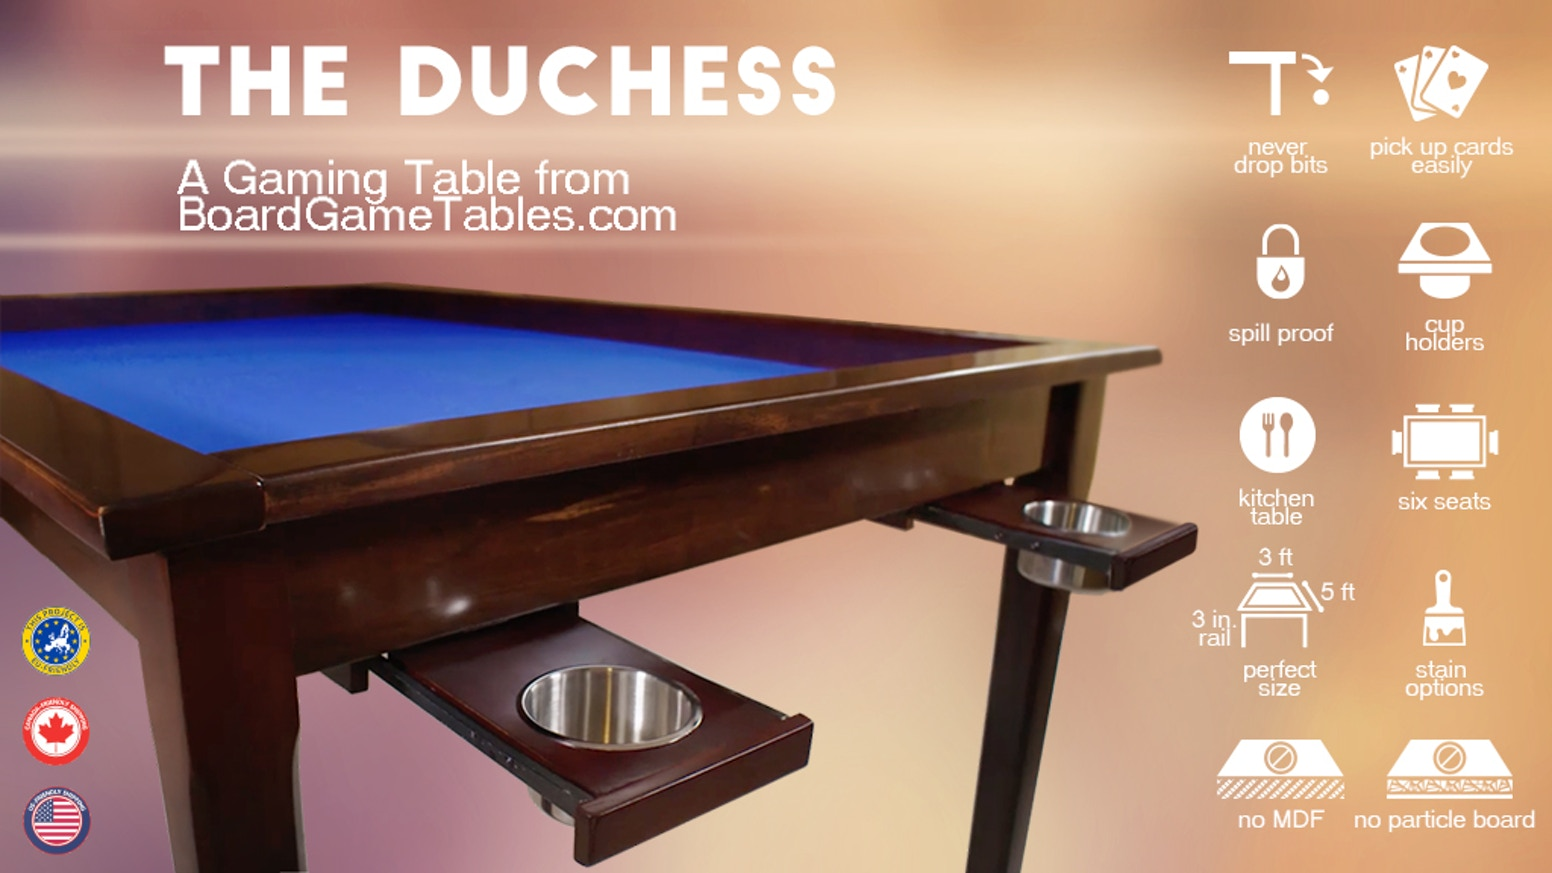 The Duchess - A Gaming Table from BoardGameTables.com by Chad